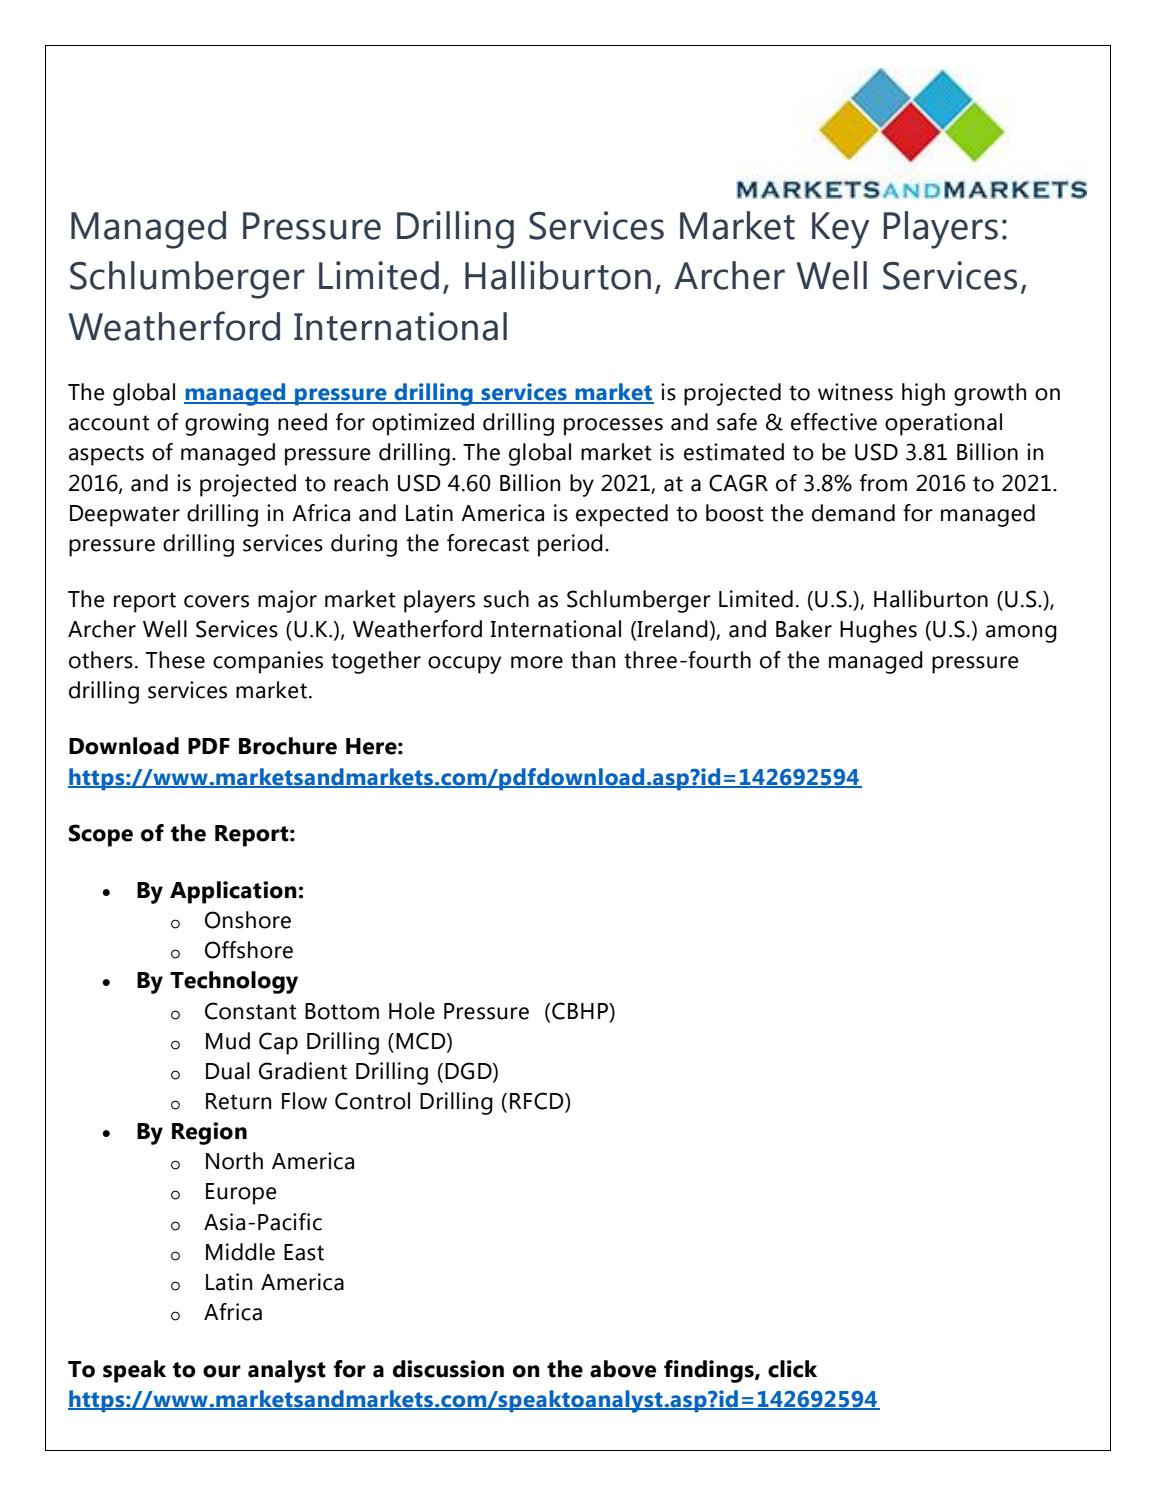 Managed Pressure Drilling Services Market Key Players: Schlumberger